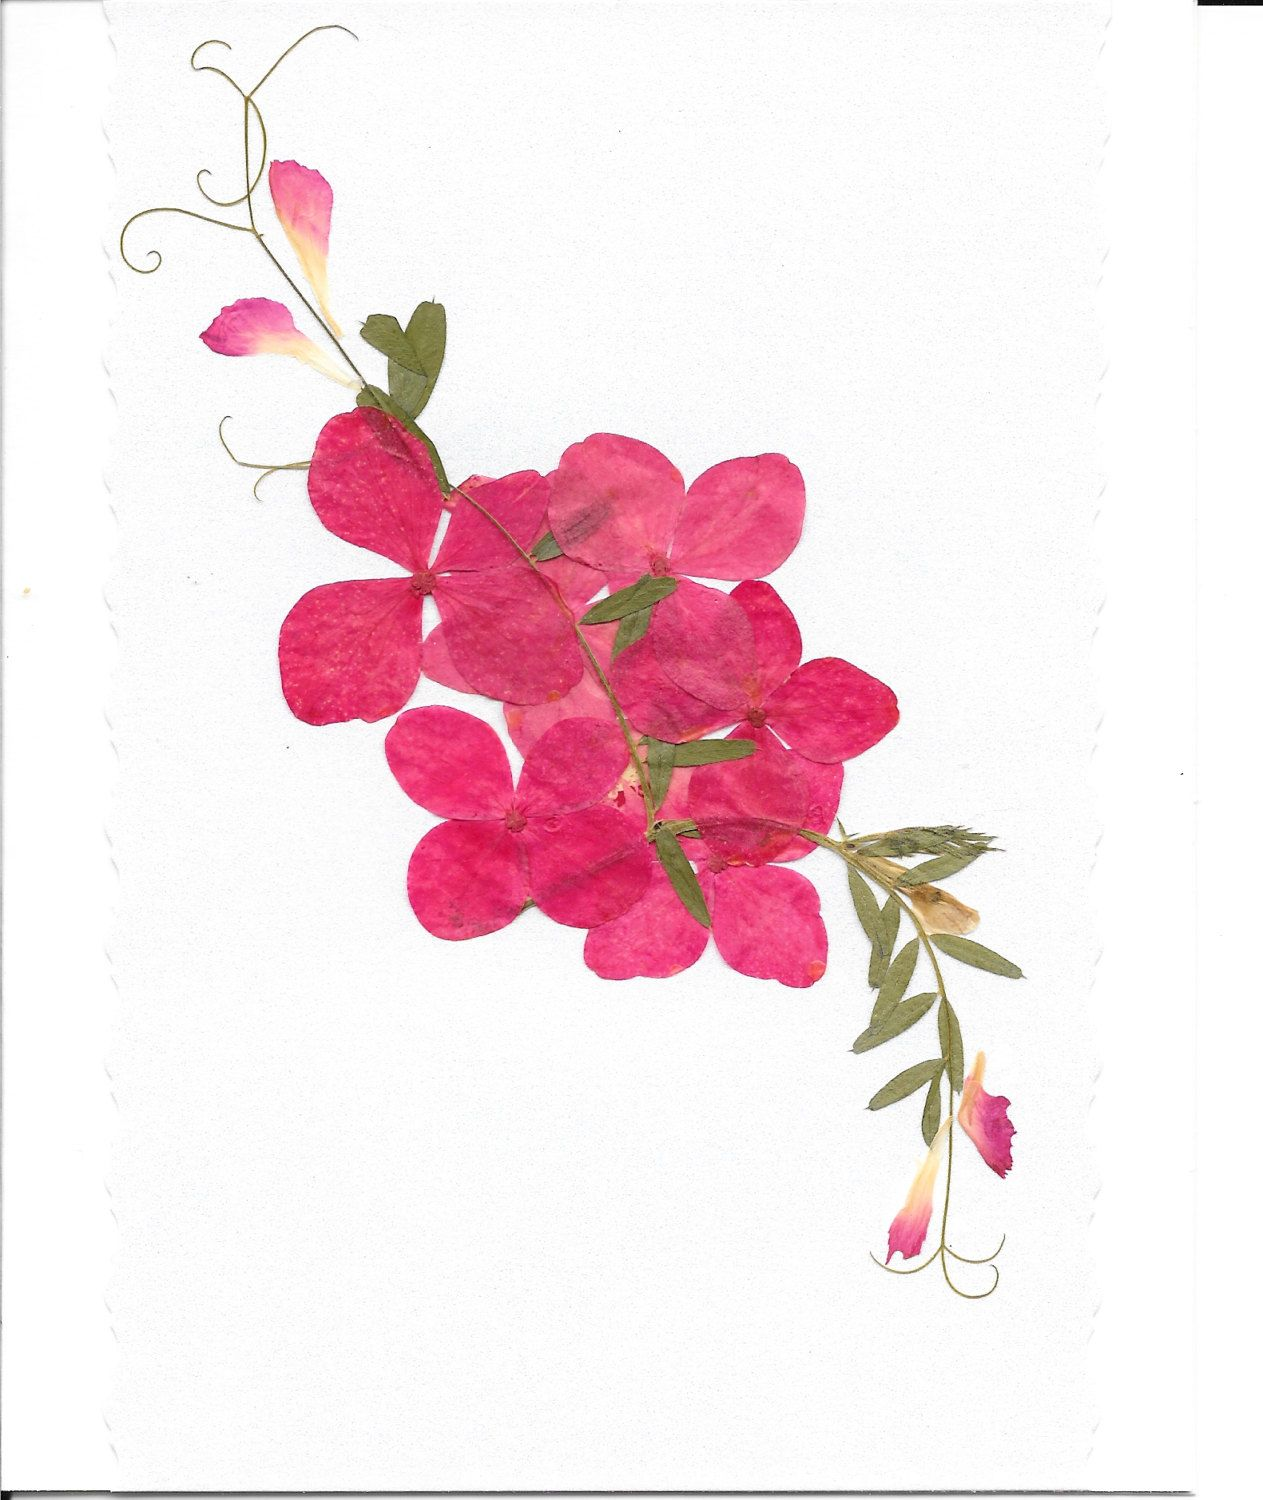 Pressed flowers greeting card real flower card birthday card pressed flowers greeting card real flower card birthday card floral card blank izmirmasajfo